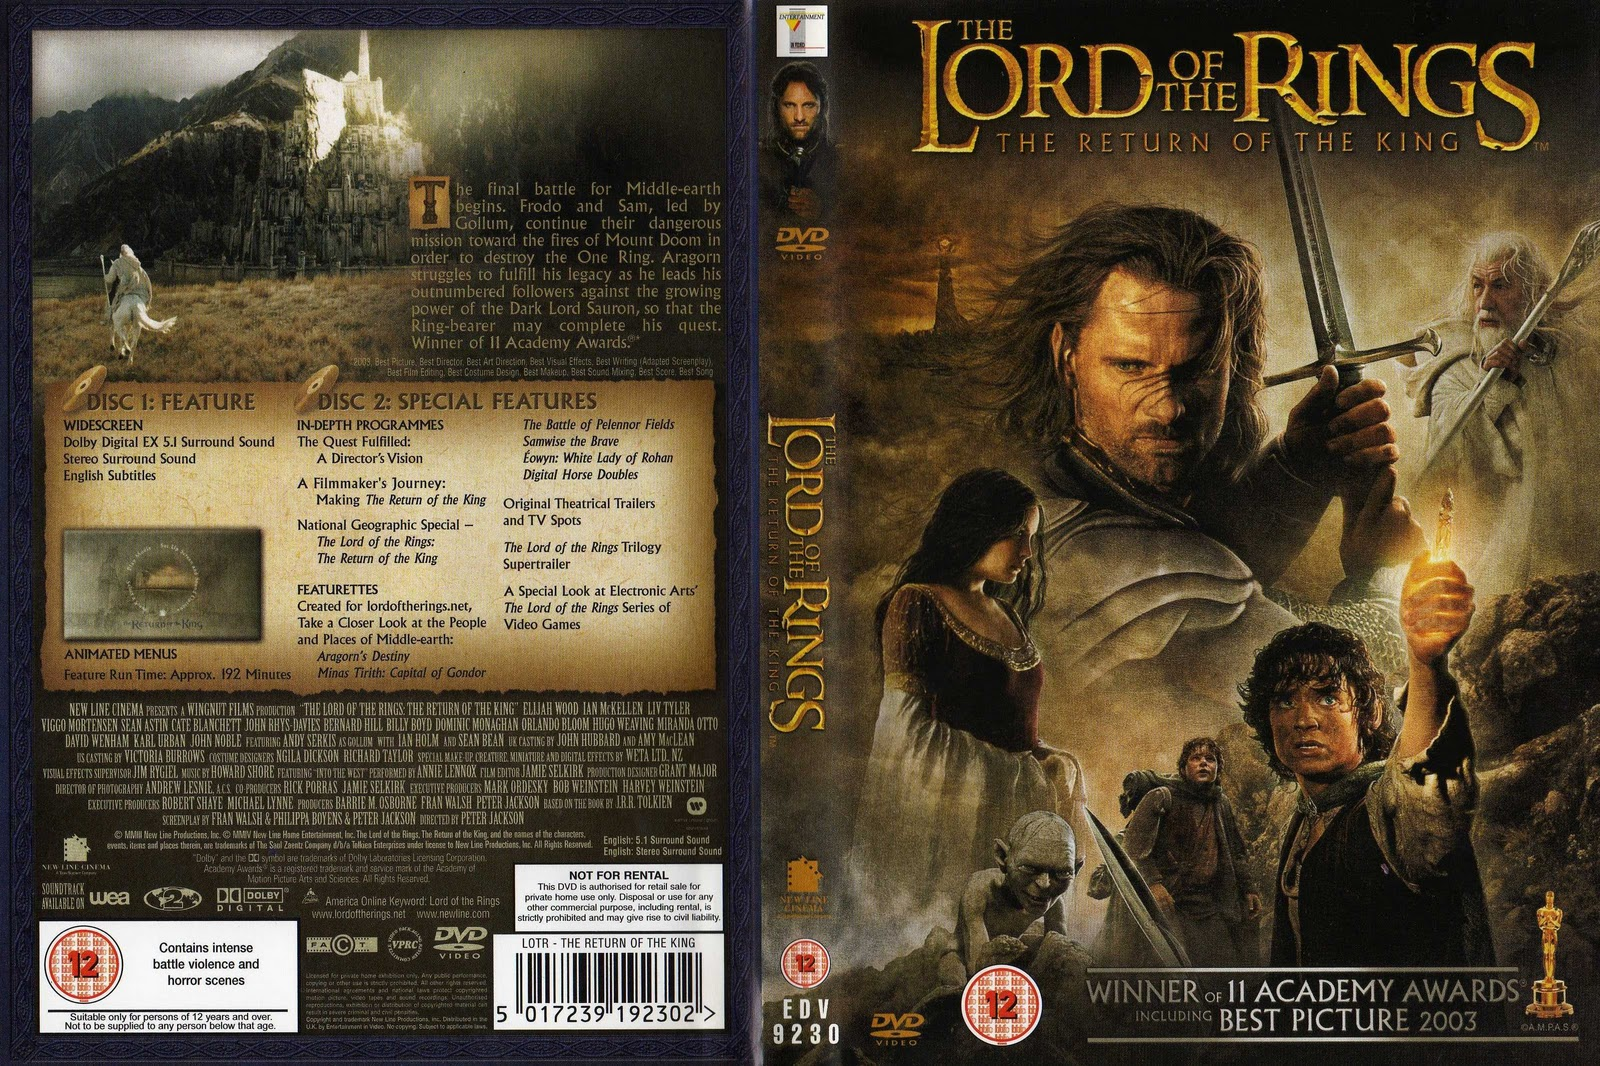 http://3.bp.blogspot.com/-3hS5DmL_5QI/TsJLmOMwOcI/AAAAAAAAA60/c_0iCx3mhrE/s1600/The_Lord_Of_The_Rings_The_Return_Of_The_King_R2-%255Bcdcovers_cc%255D-front.jpg